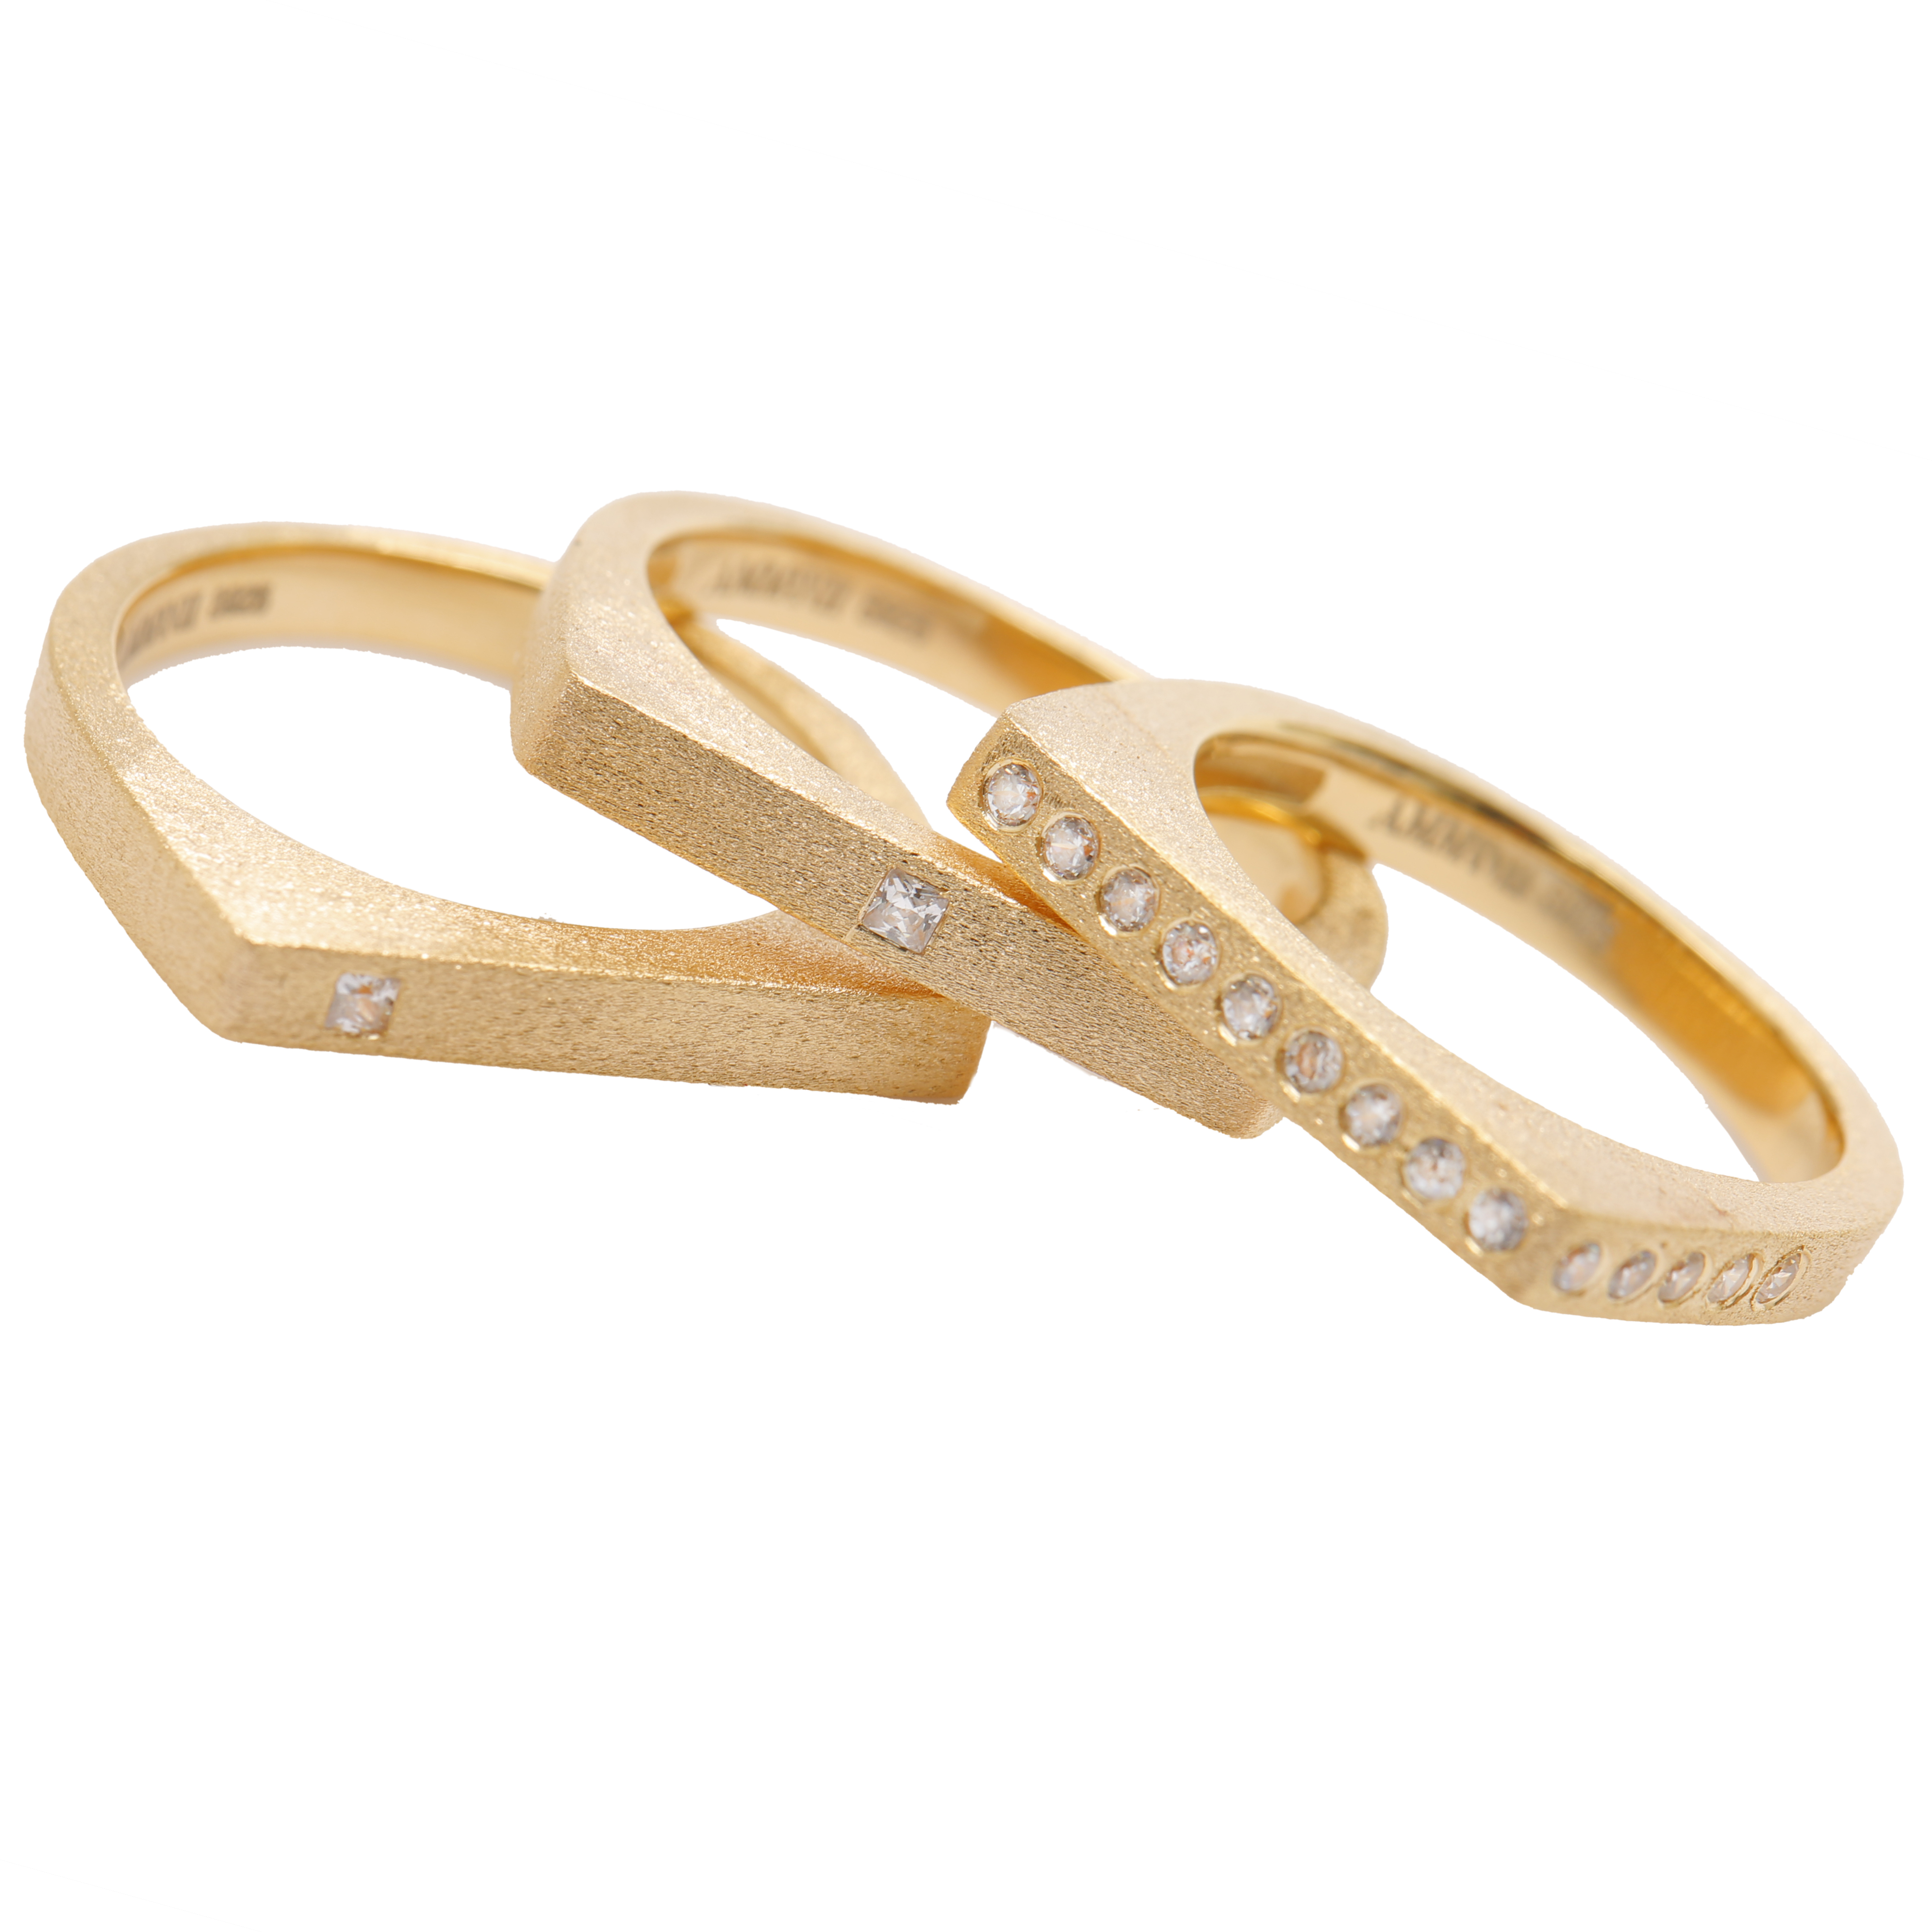 The Life Force Stacking Ring - Set of 3 by AMMANII on curated-crowd.com